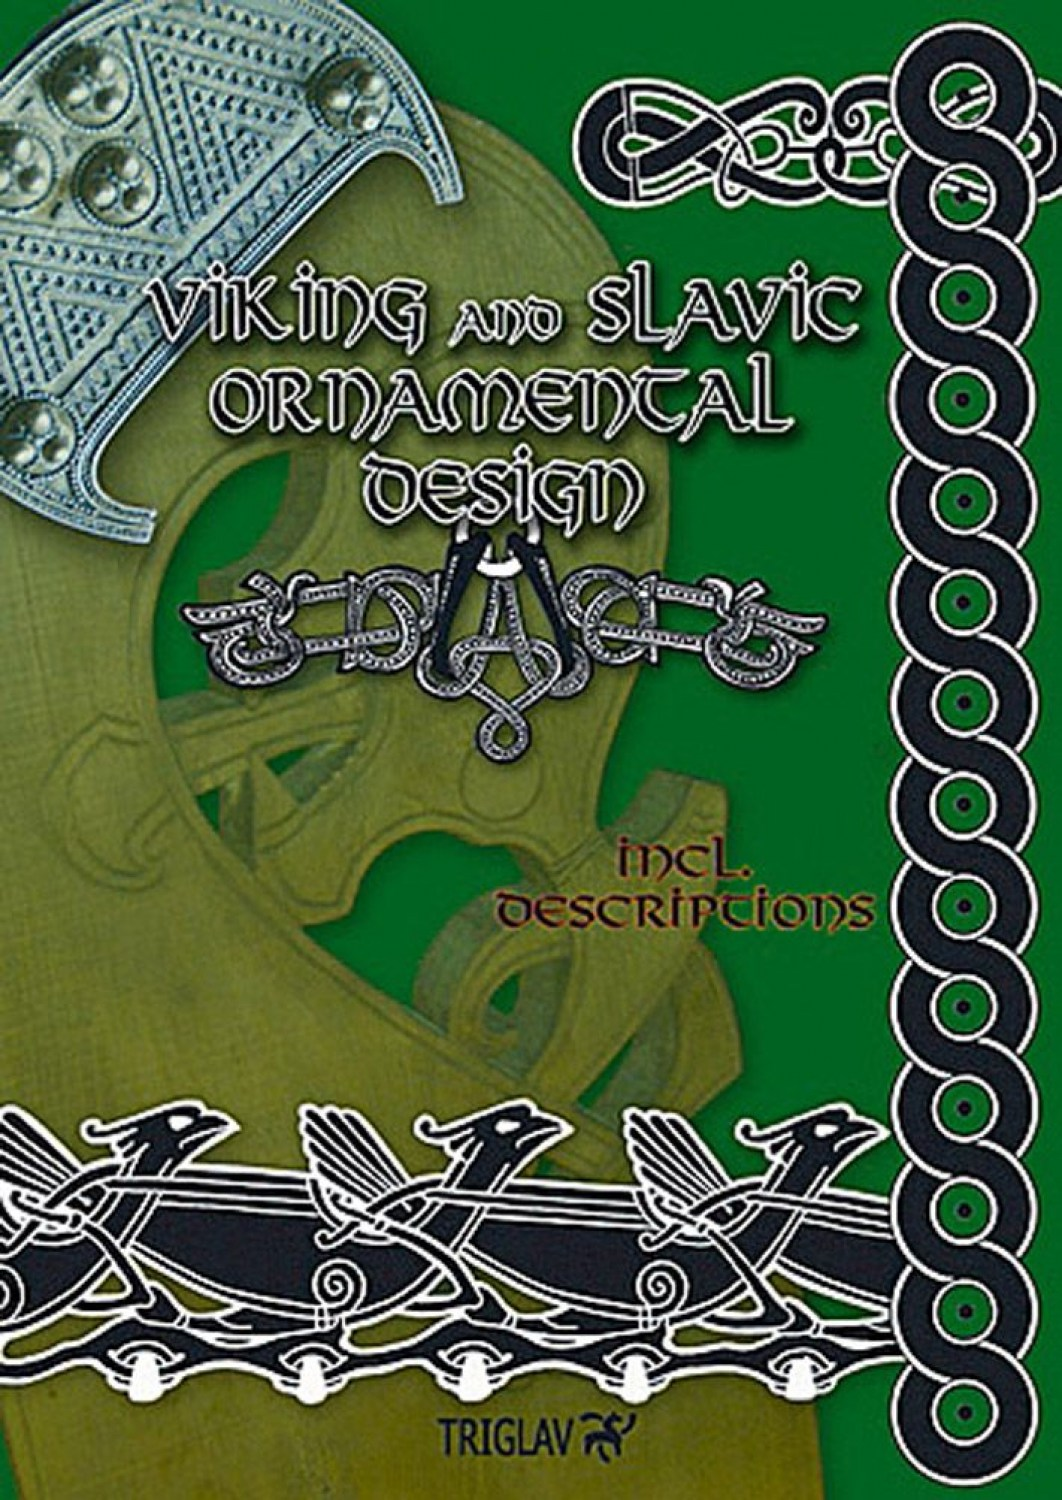 _viking_and_slav_4b44510271f8c.min